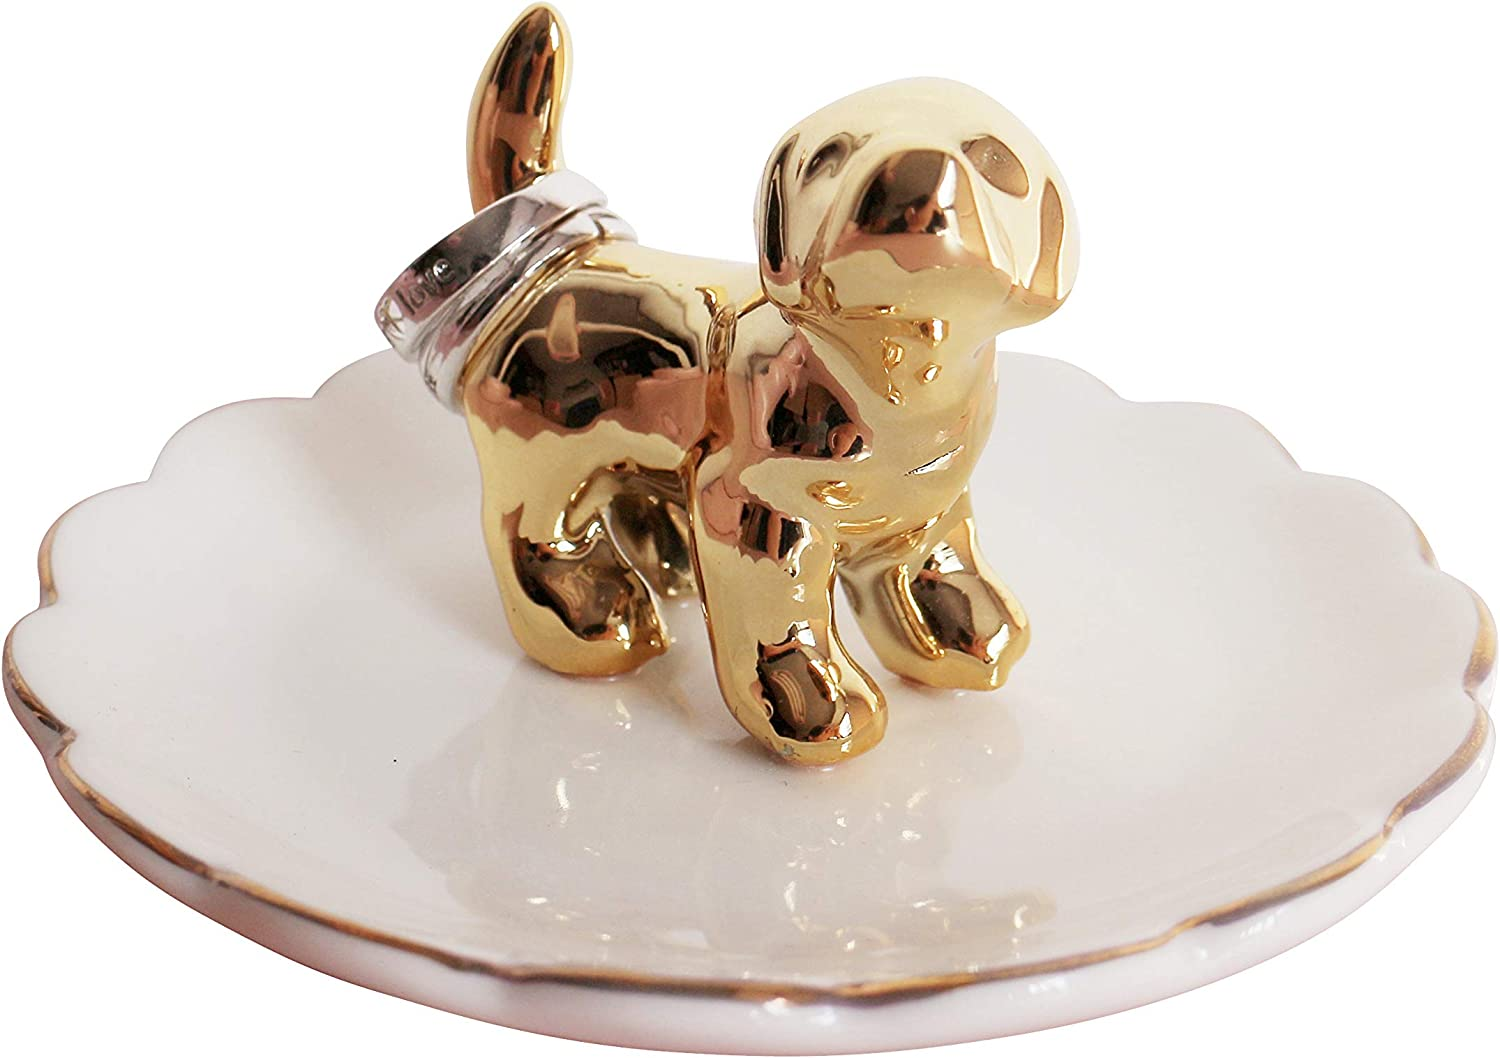 Luxury Porcelain Adorable Dog Ring Holder, Ceramic Jewelry Tray, Bracelets Plate, Dessert Dish - Perfect for Holding Small Jewelries, Rings, Necklaces, Earrings, Bracelets, Trinket etc.